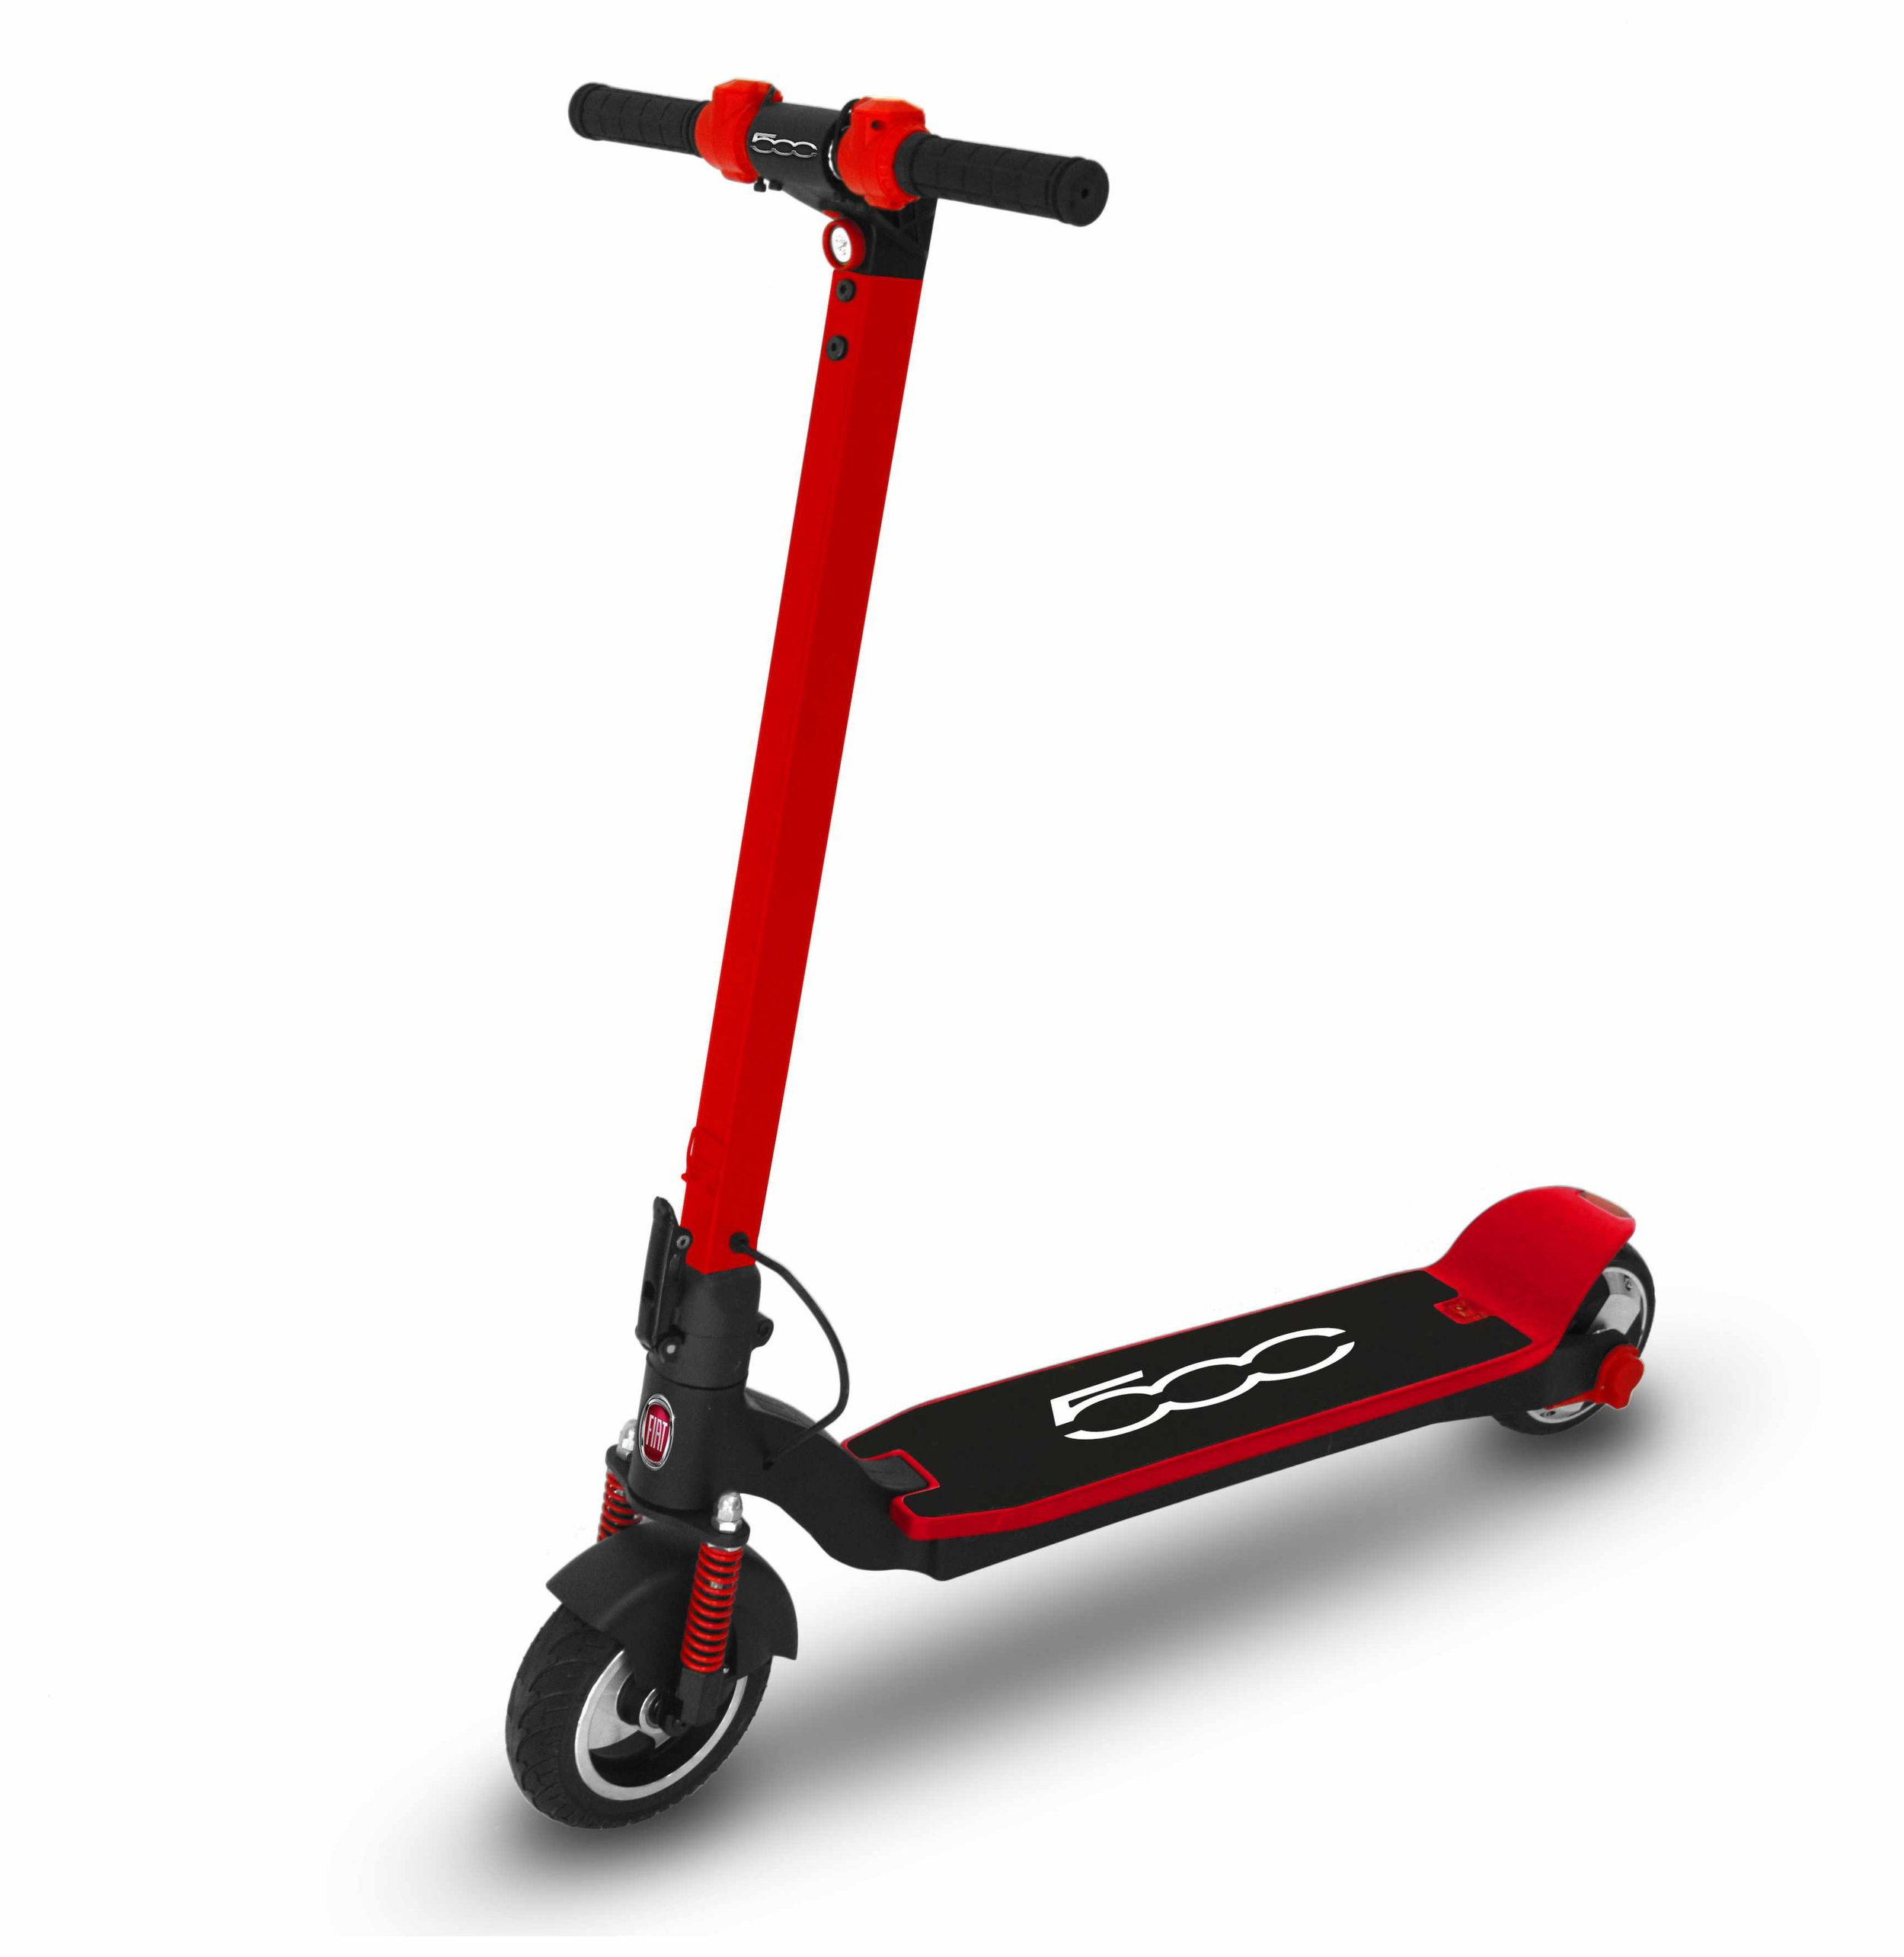 Urban E-Mobility - Electric scooters are becoming more and more popular. We are following the trend with the famous brands like FIAT 500.